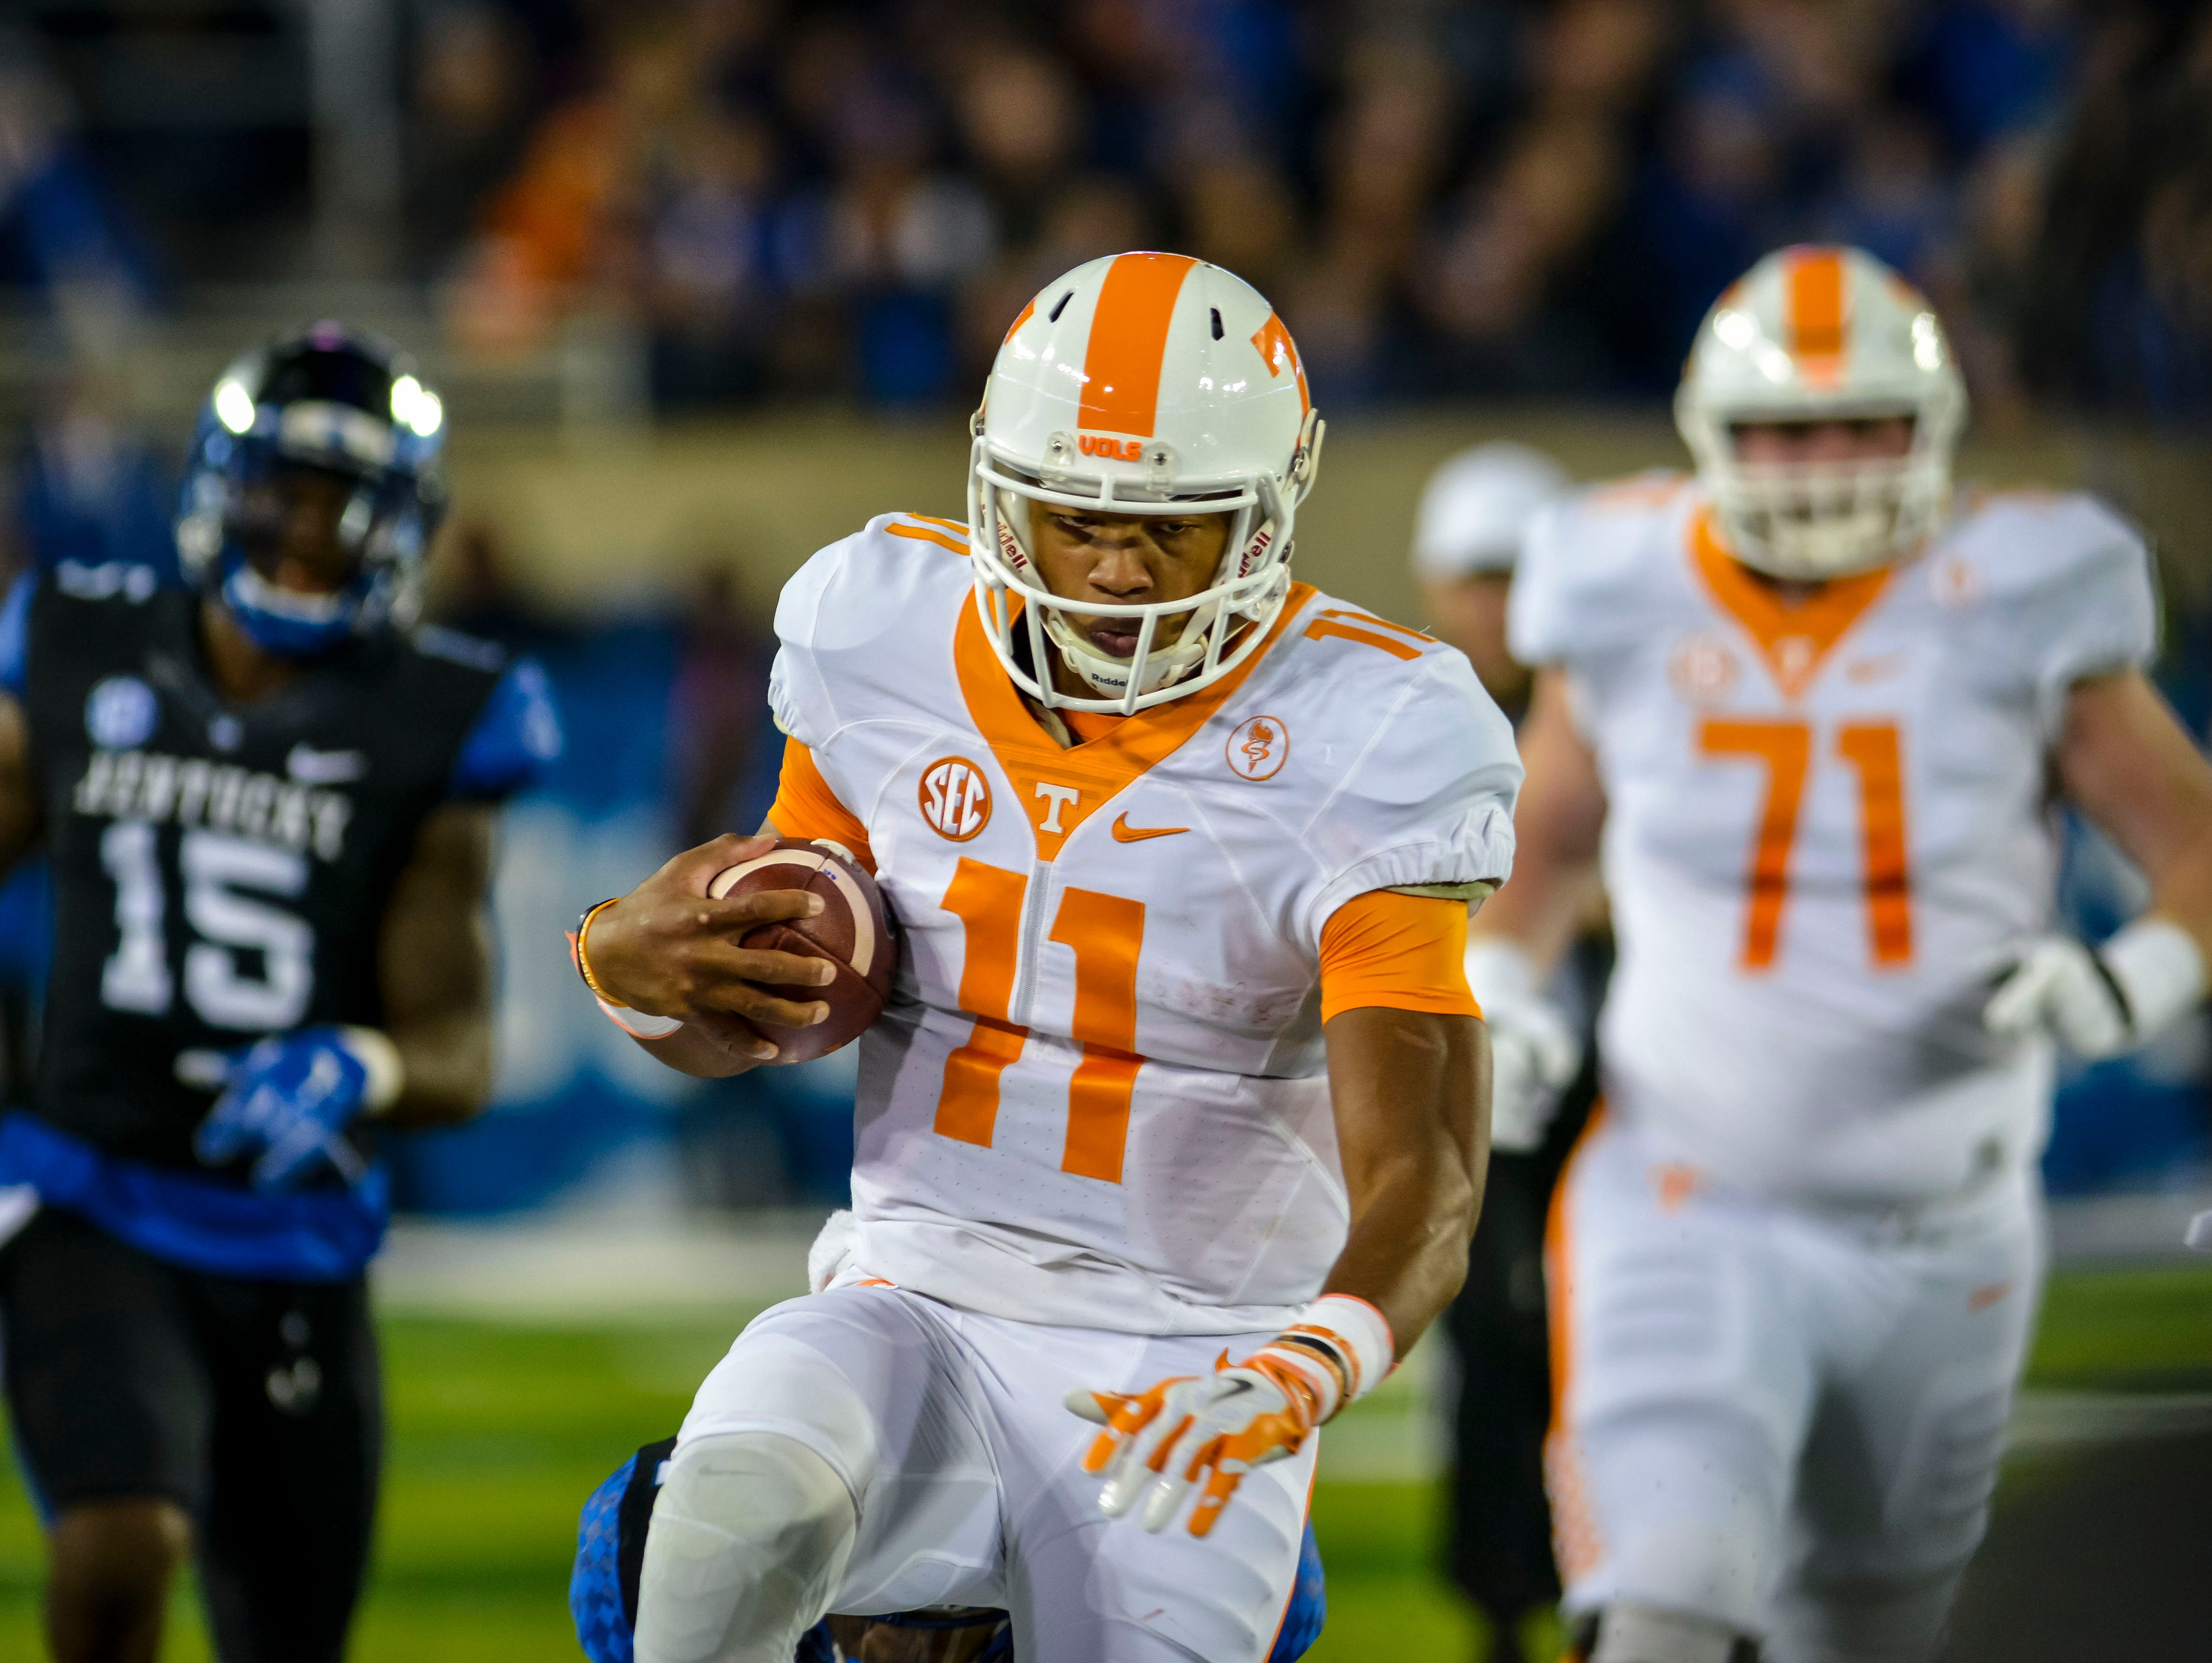 Tennessee quarterback Joshua Dobbs runs out of bounds with the ball in the first quarter against Kentucky Saturday night at Commonwealth Stadium in Lexington. (October 31, 2015)